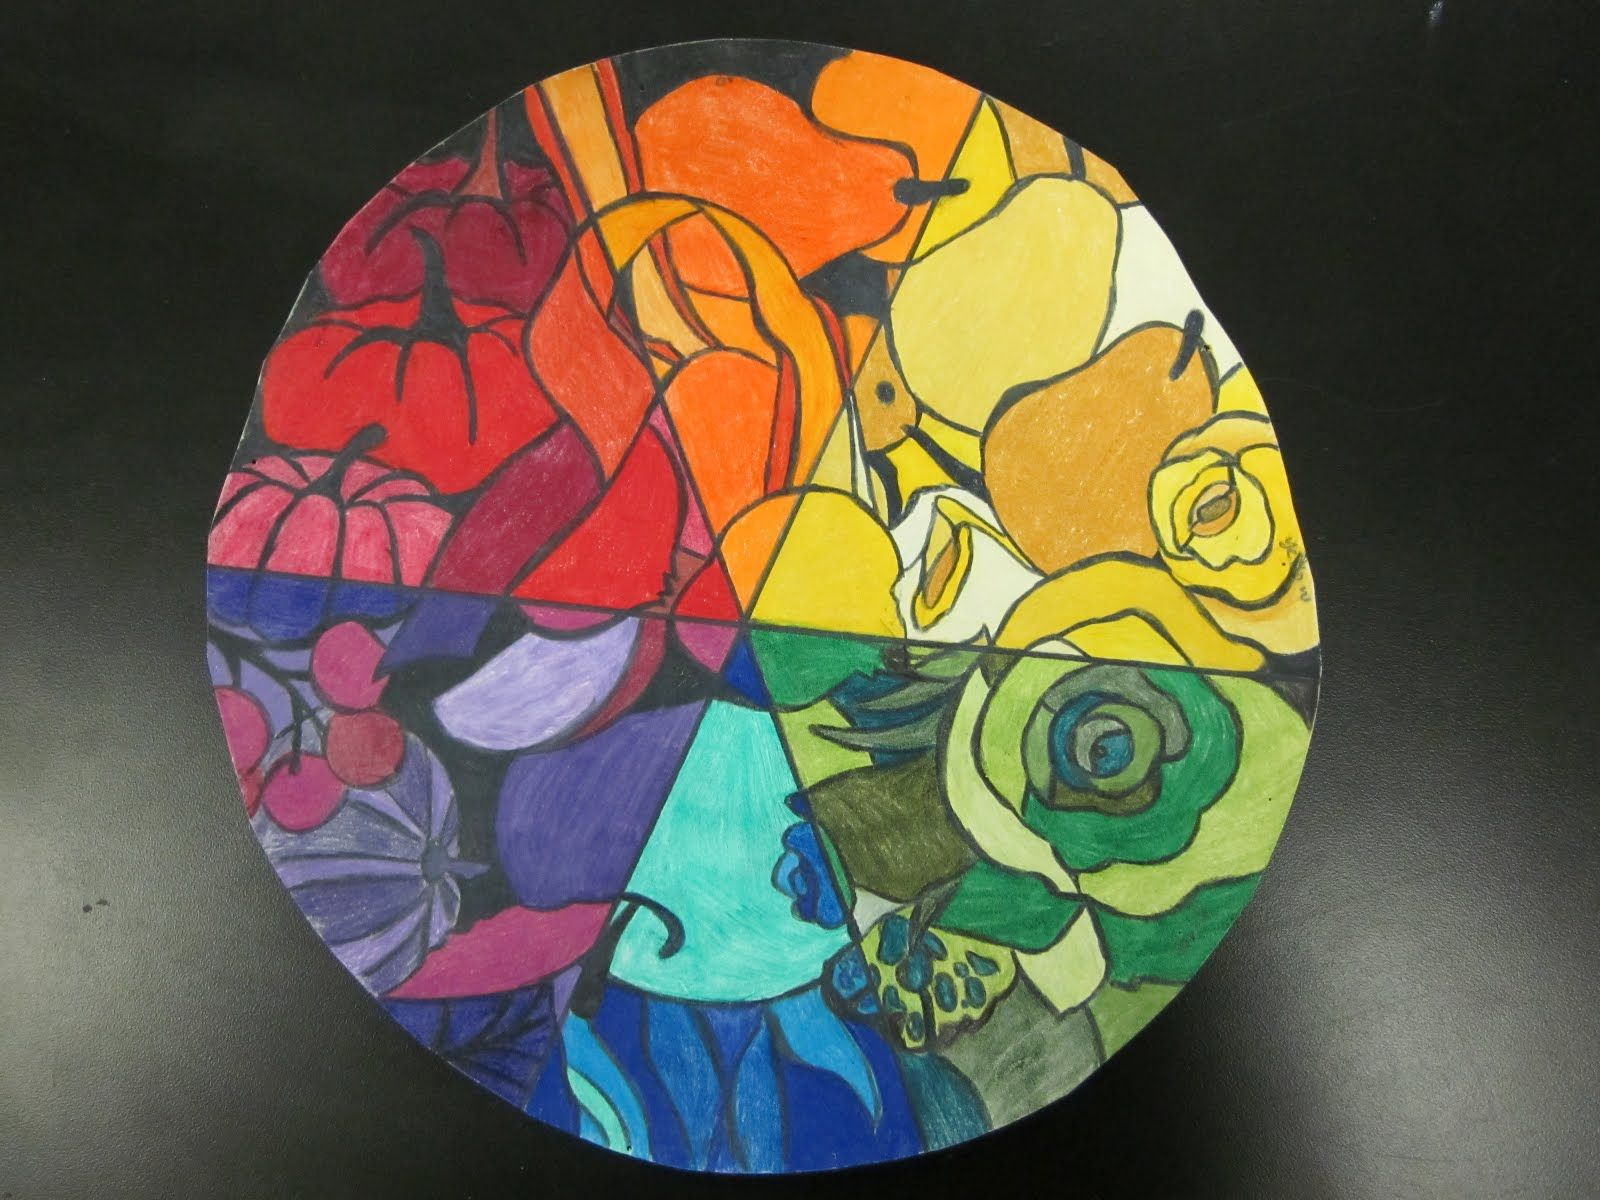 Interesting Twist On A Color Wheel Project Draw An Image Circular Card